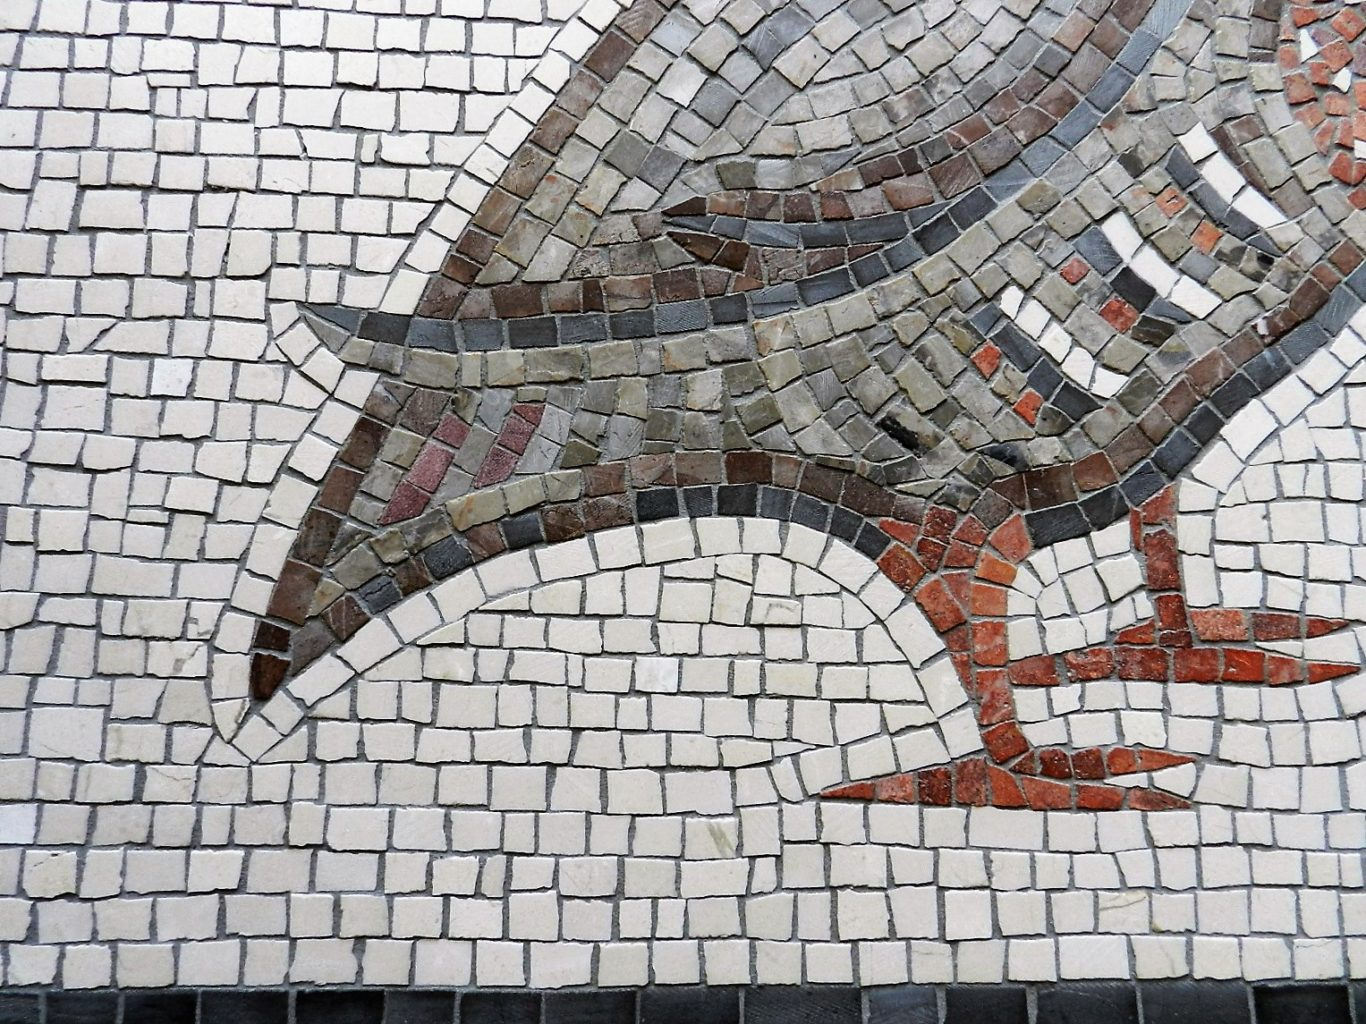 mosaic bird detail